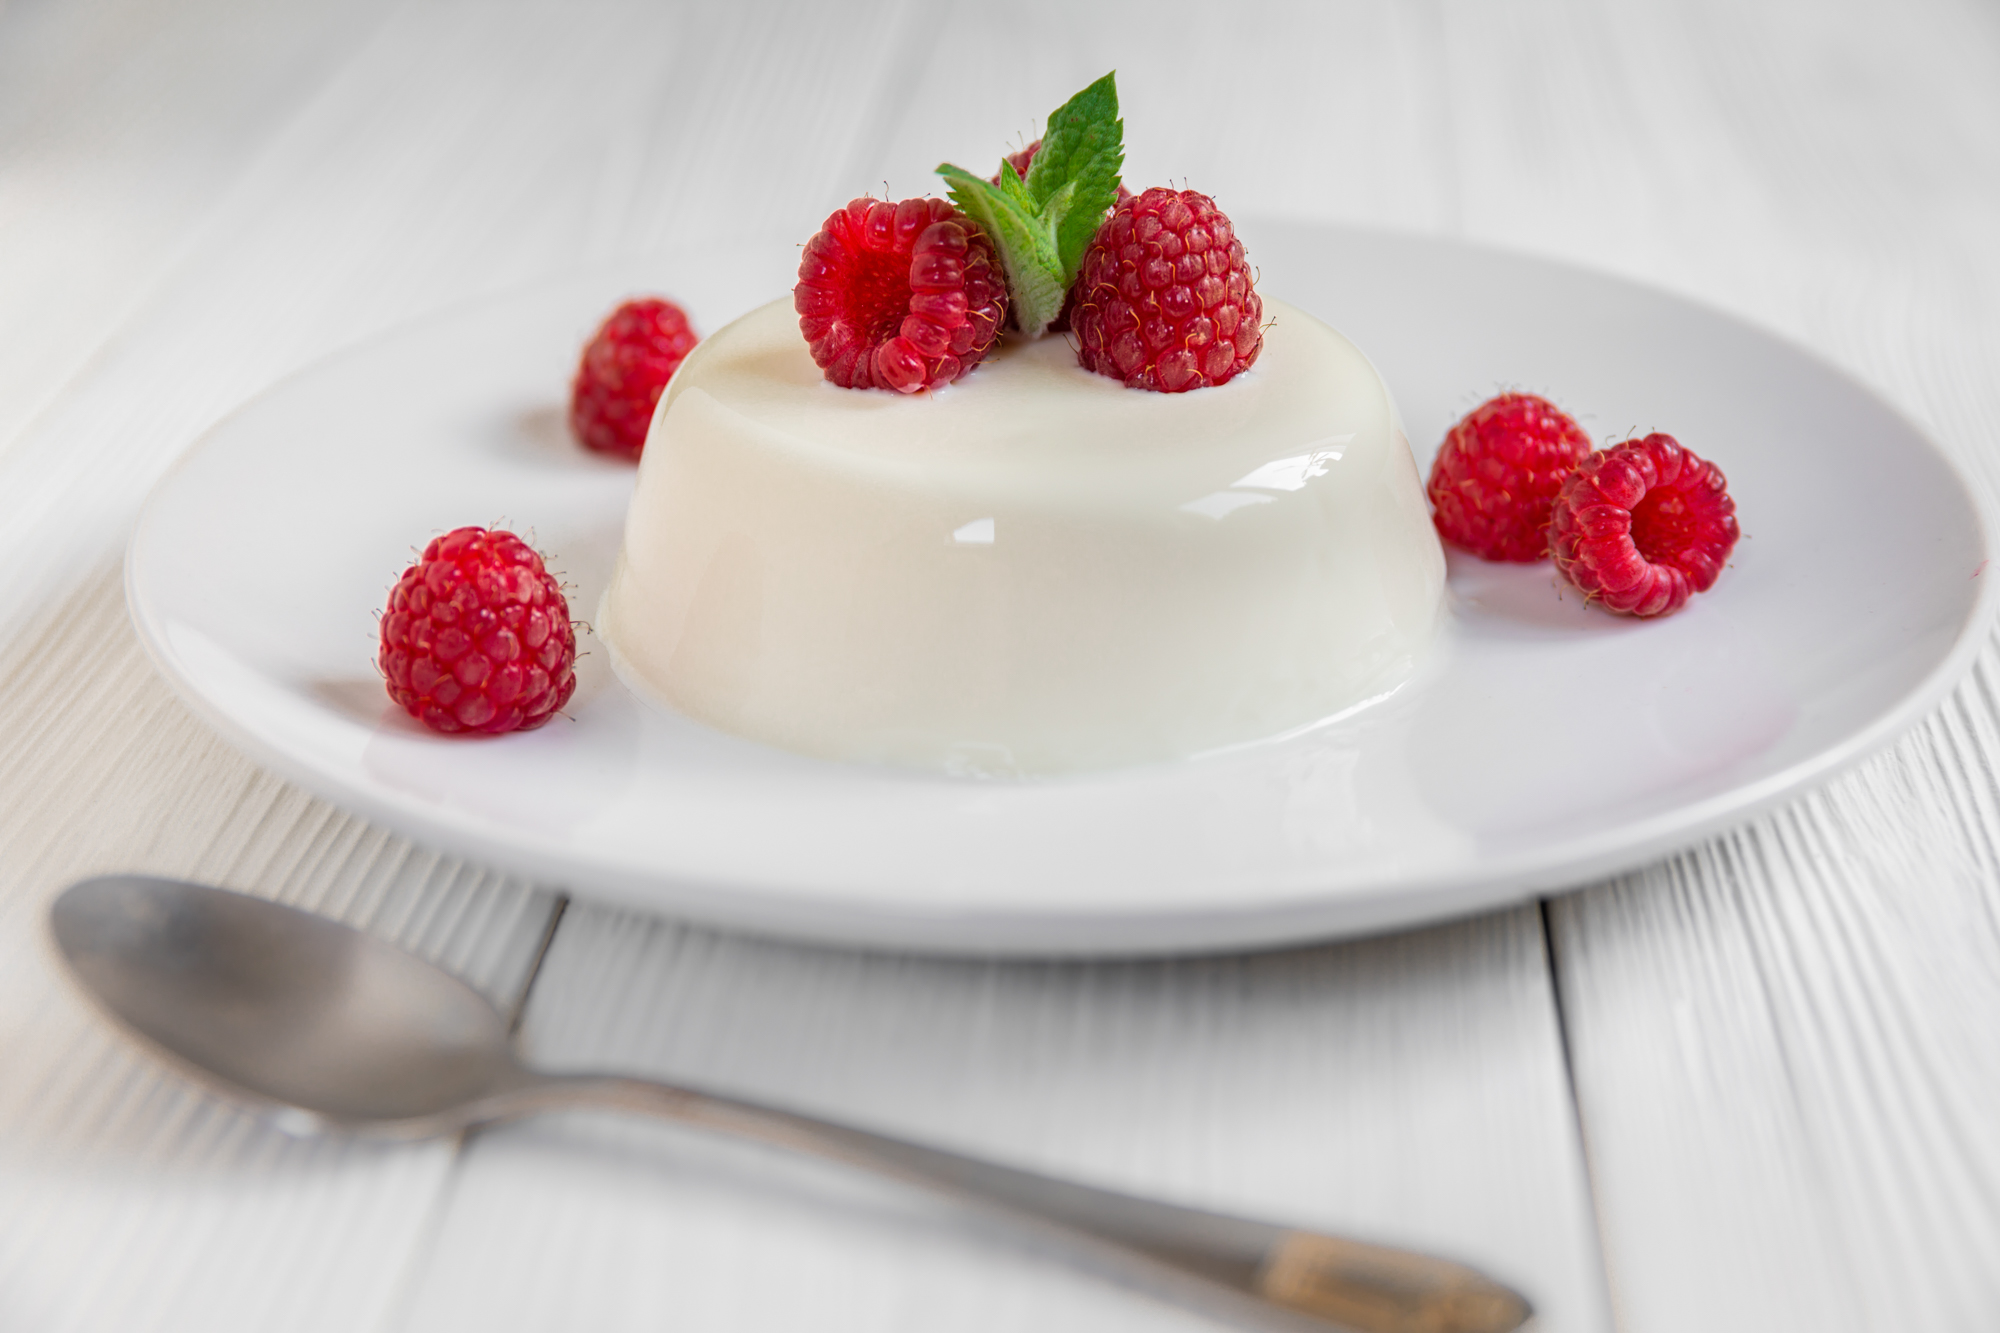 Panna cotta with raspberry, decorated with fresh mint on a white background